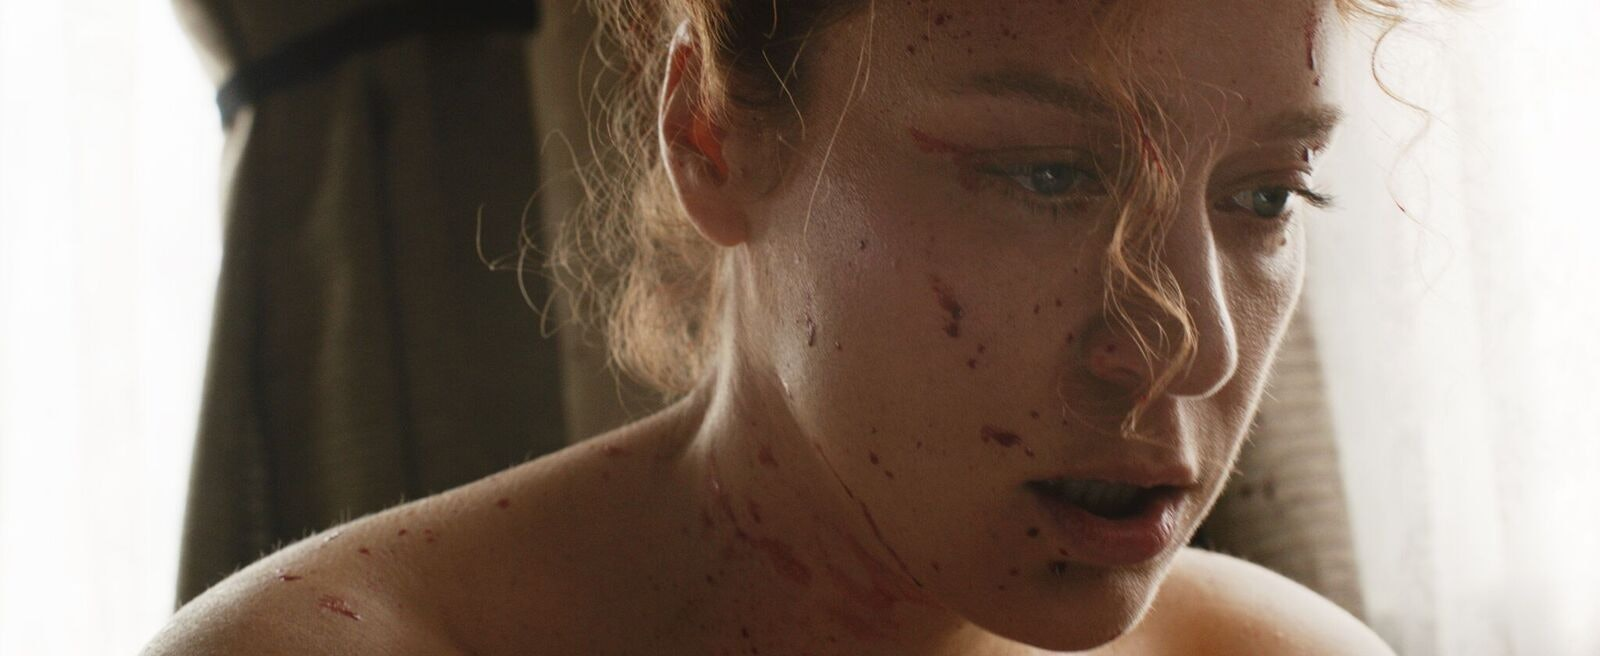 The Lizzie Borden Movie 'Lizzie' Will Make You Sympathize With An